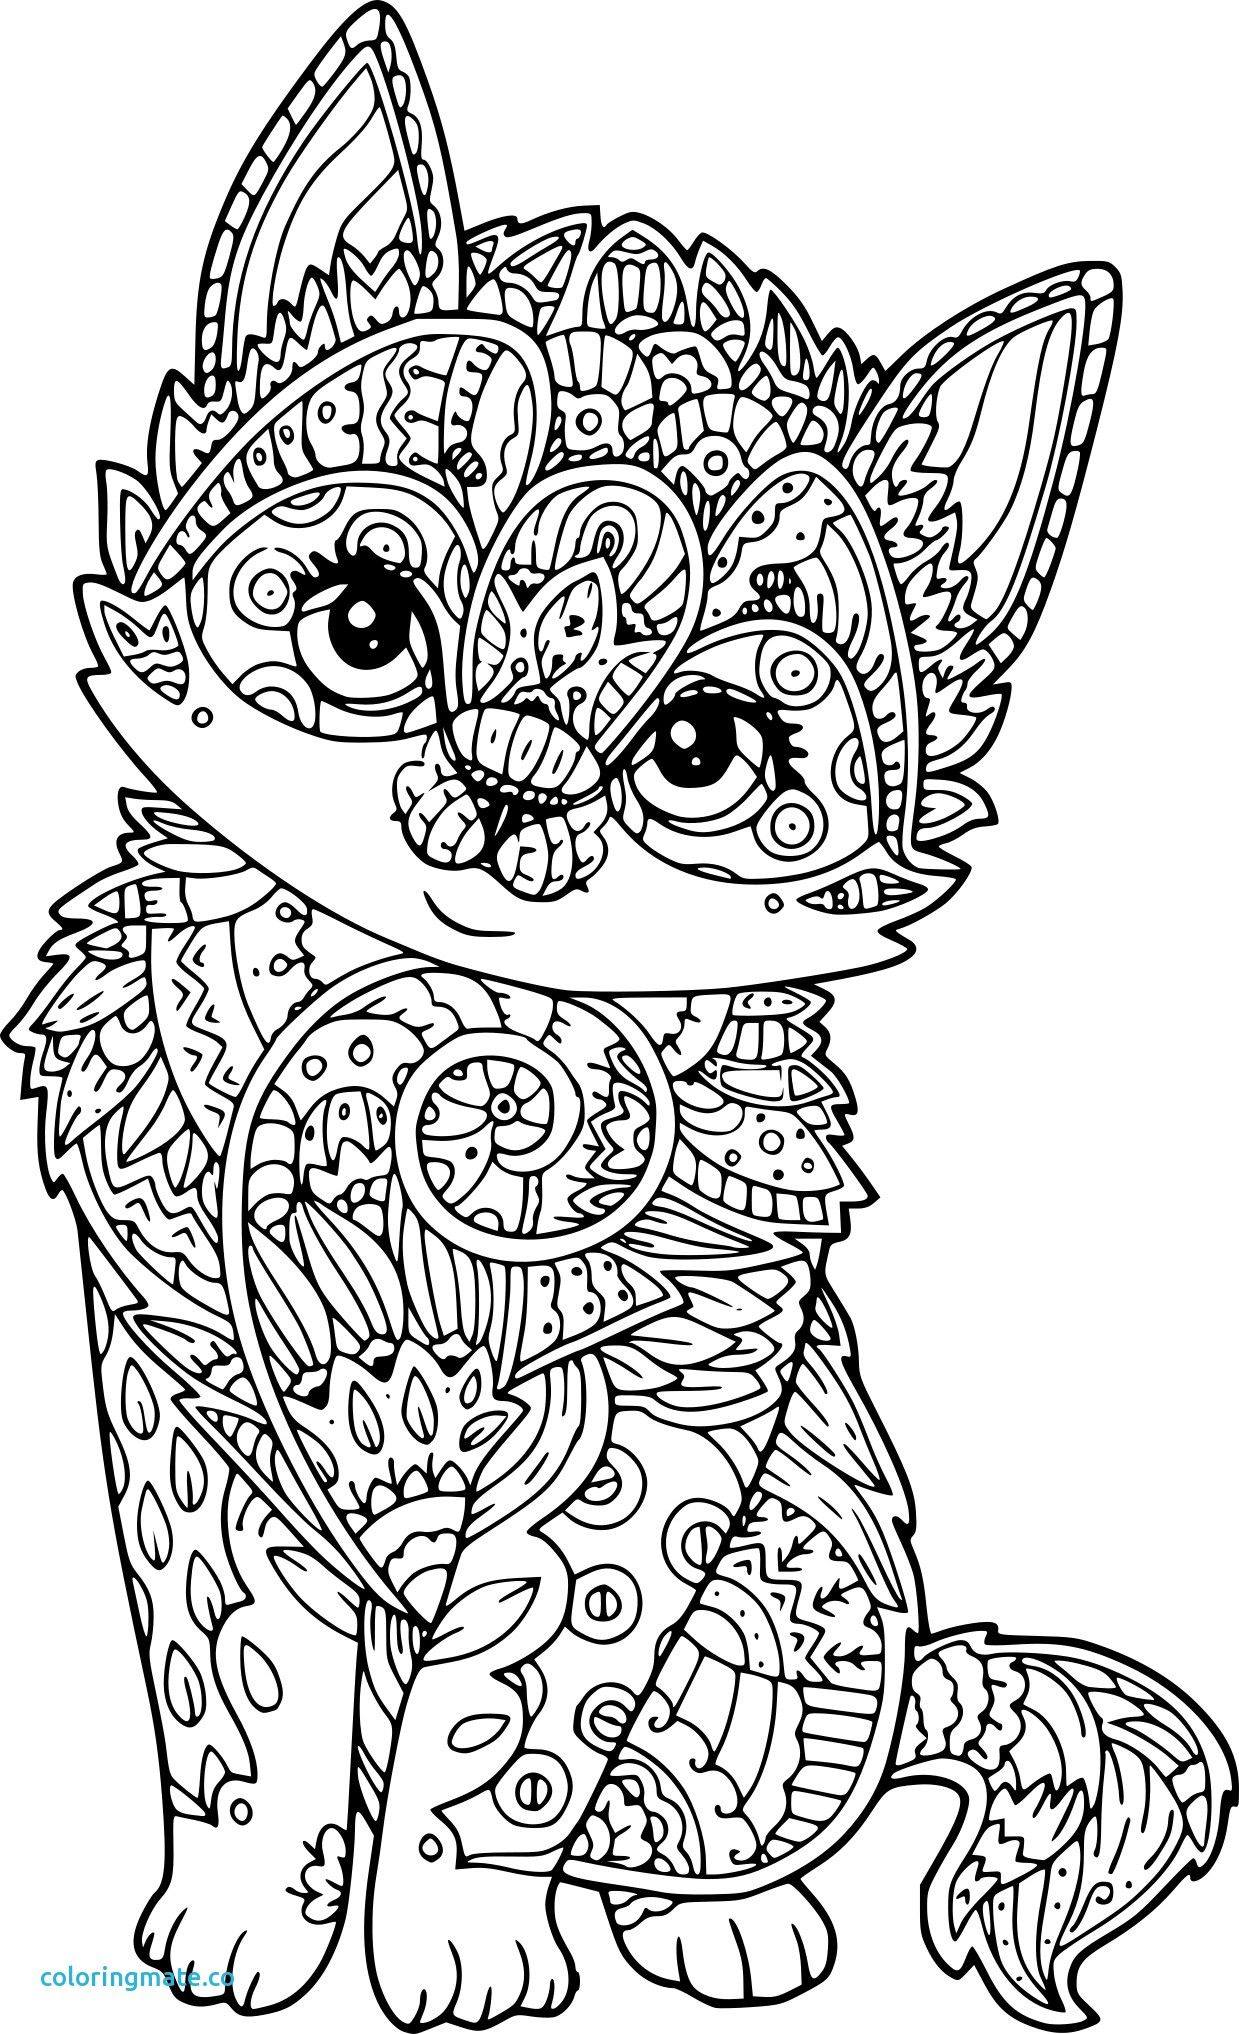 Coloriage mandala chat papillon fresh coloriage chat antistress a imprimer sur coloriages info - Un chat a colorier ...